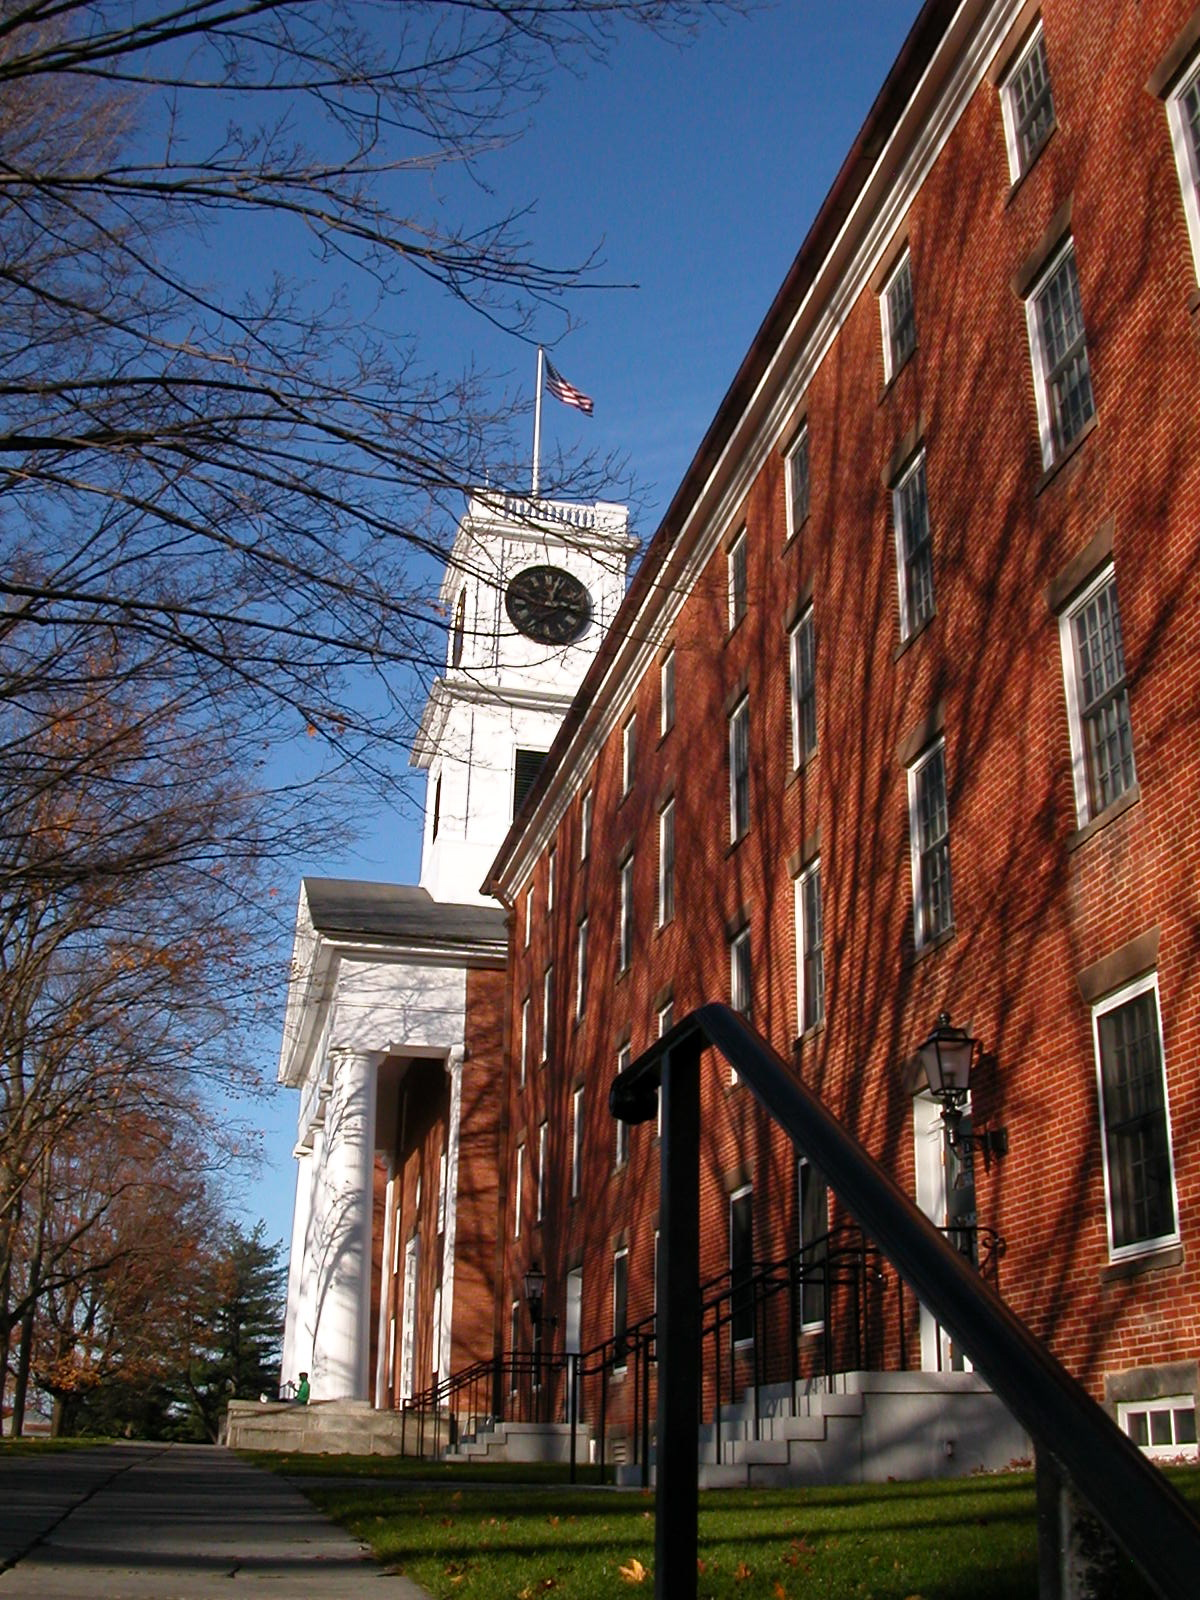 Rape accusation culture strikes at Amherst College